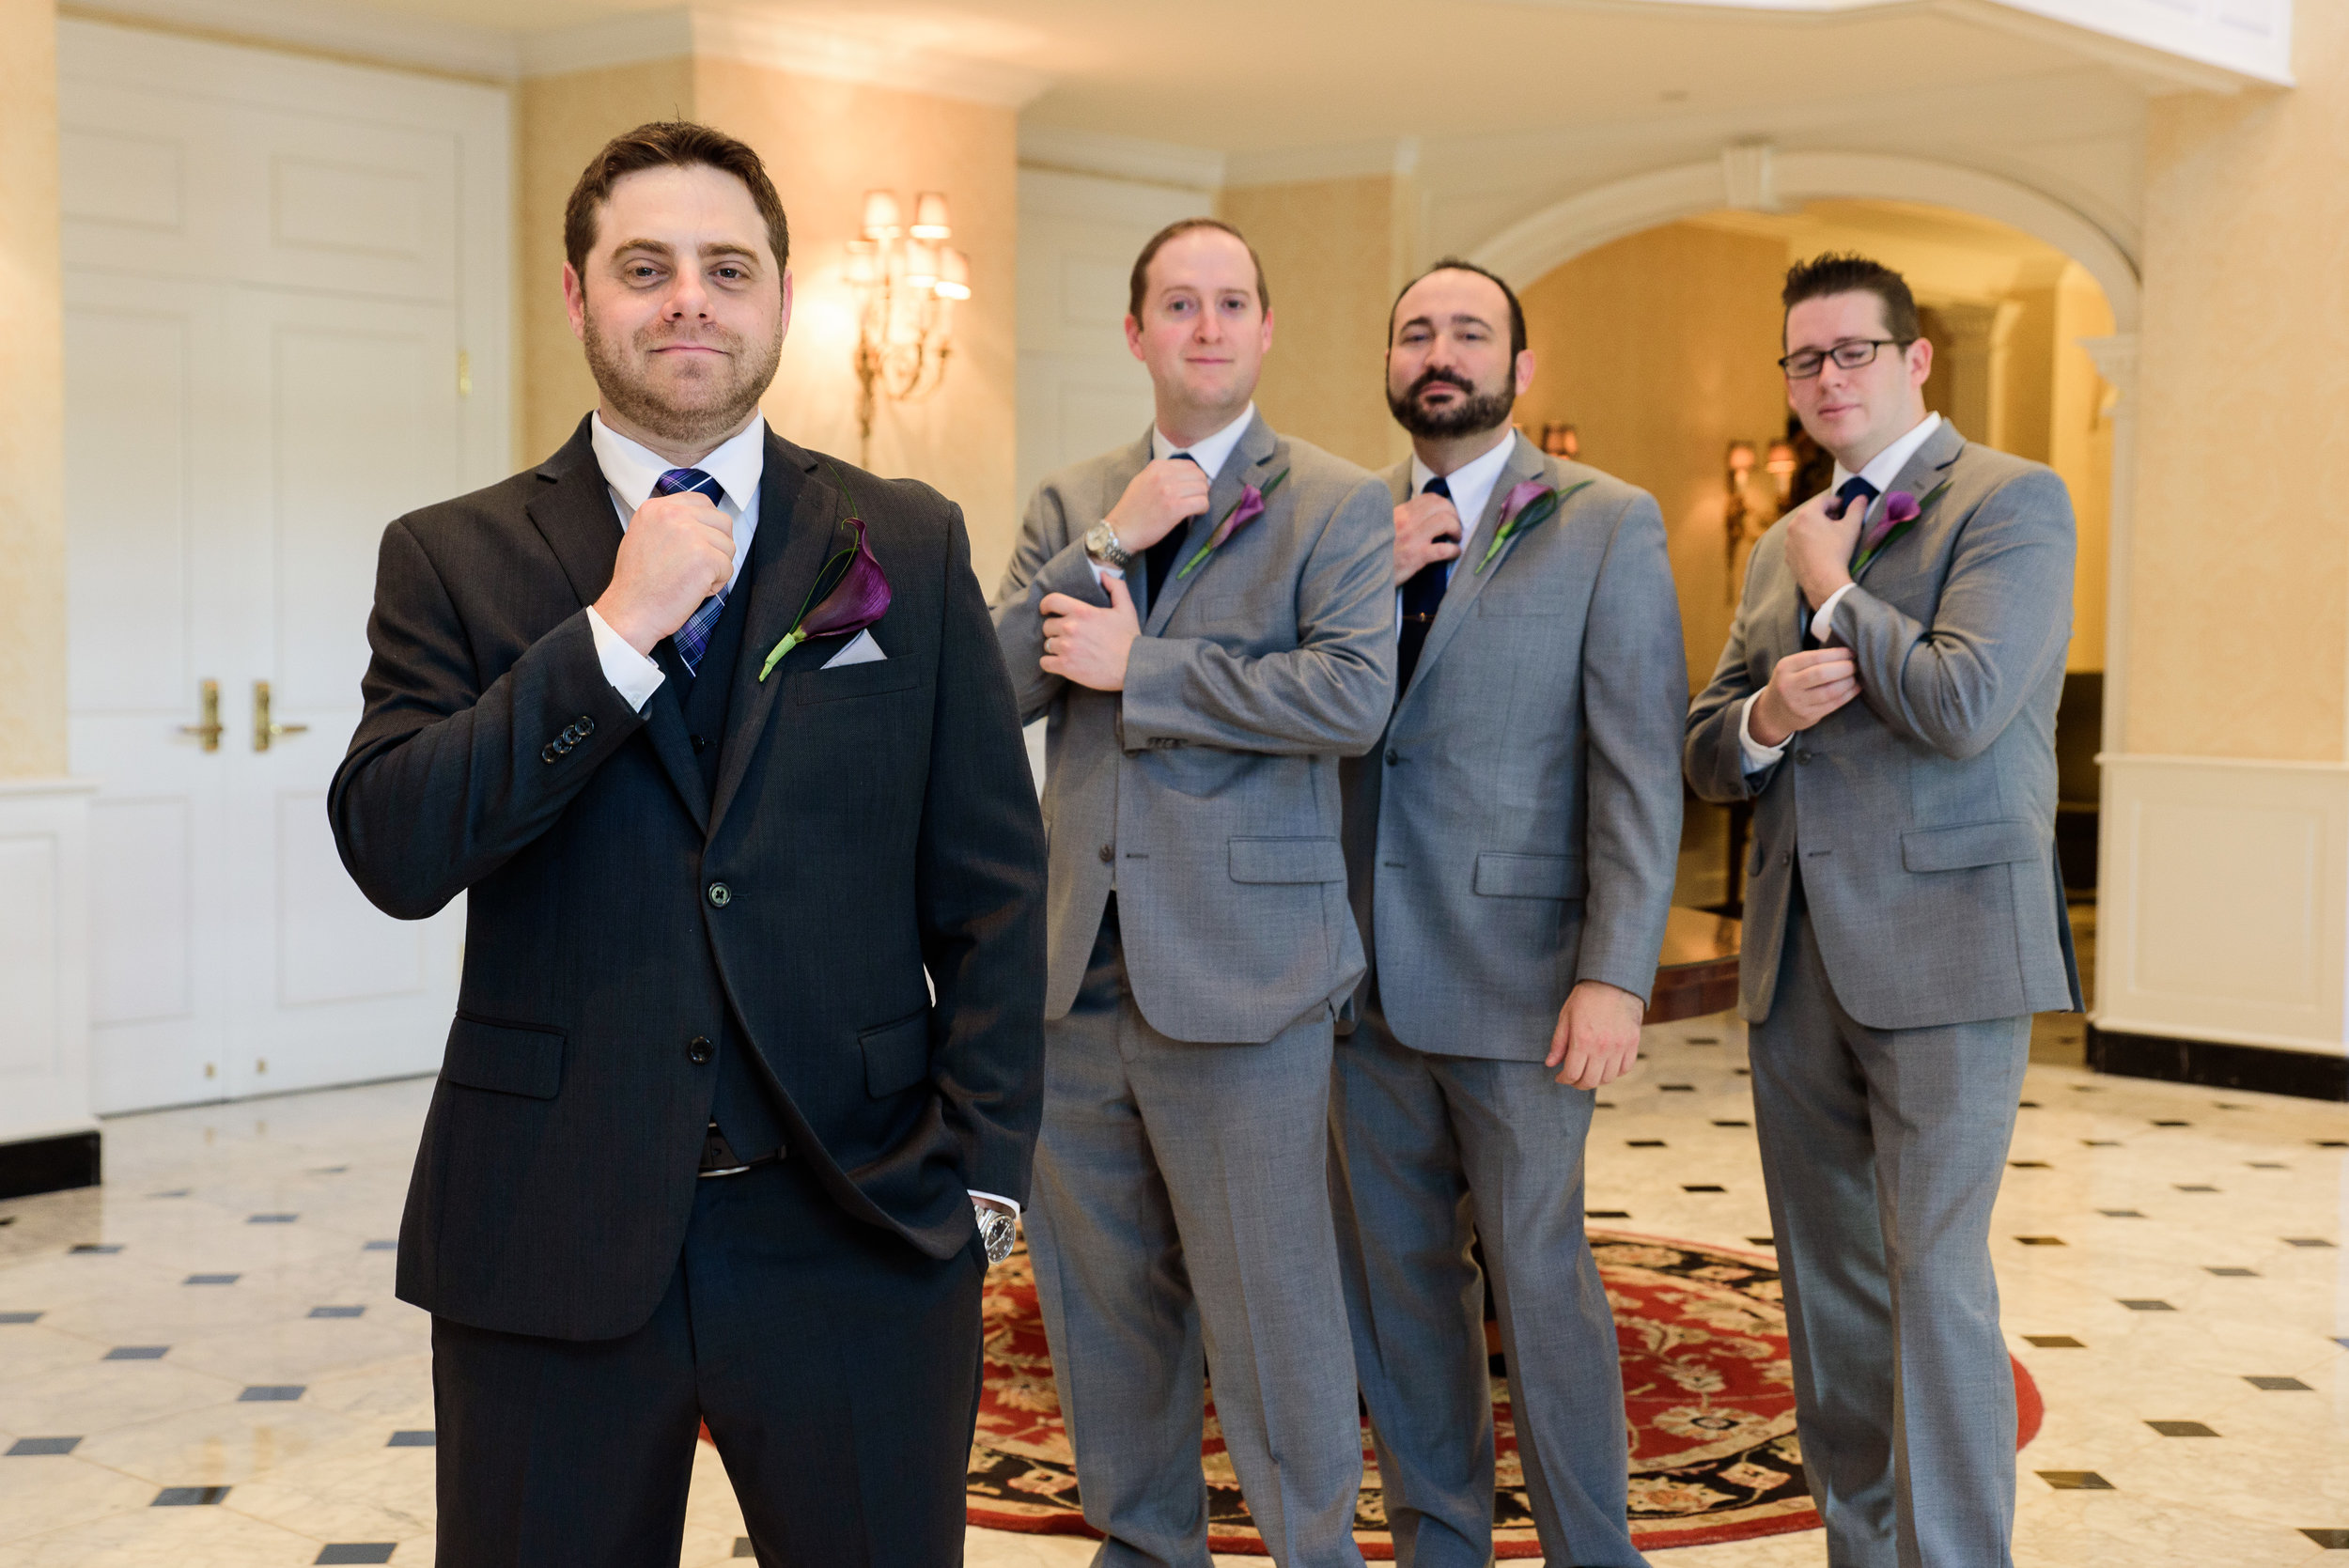 Groom and groomsmen photos - DC